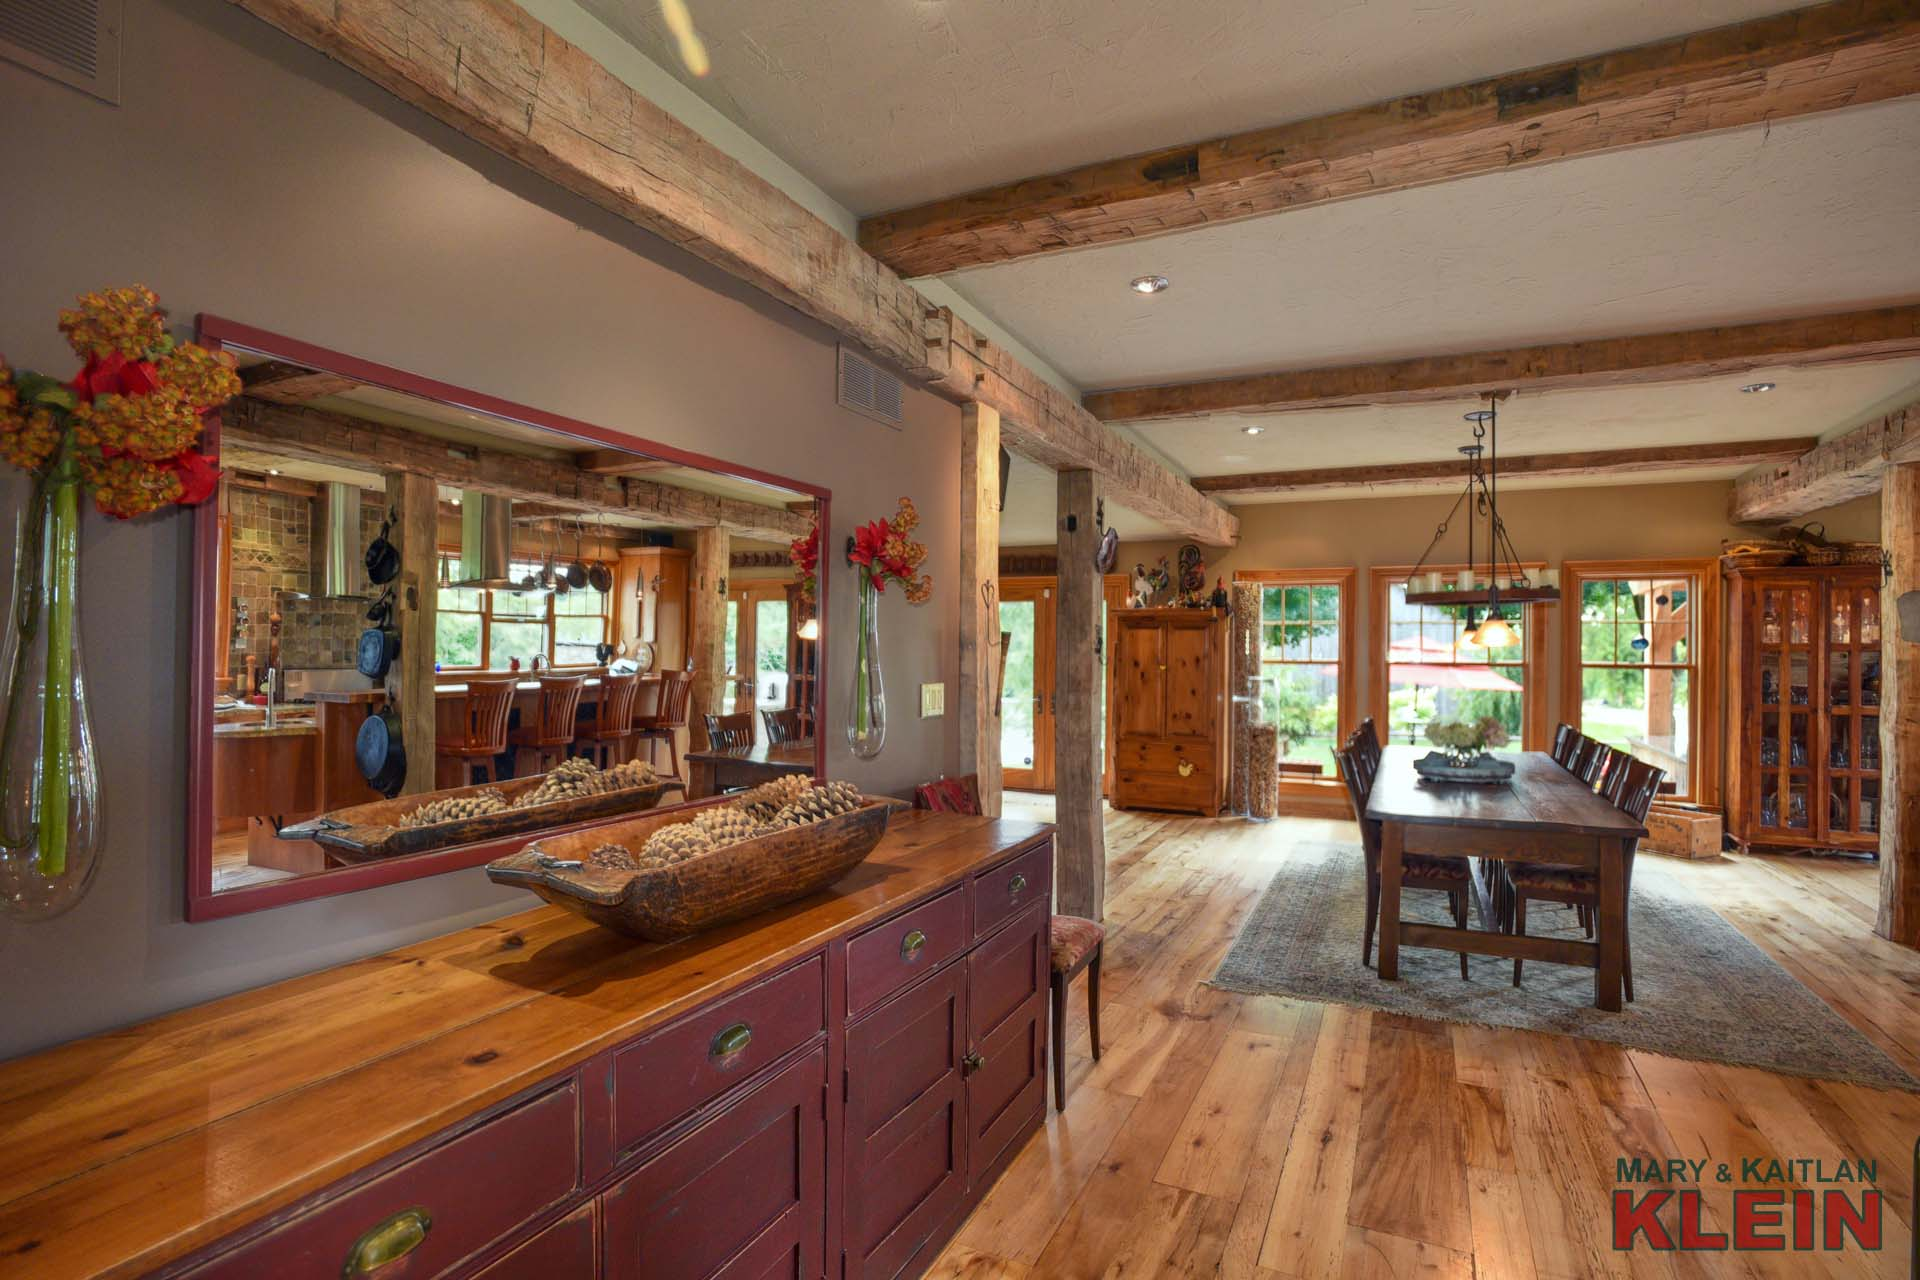 Rustic Wooden Beams